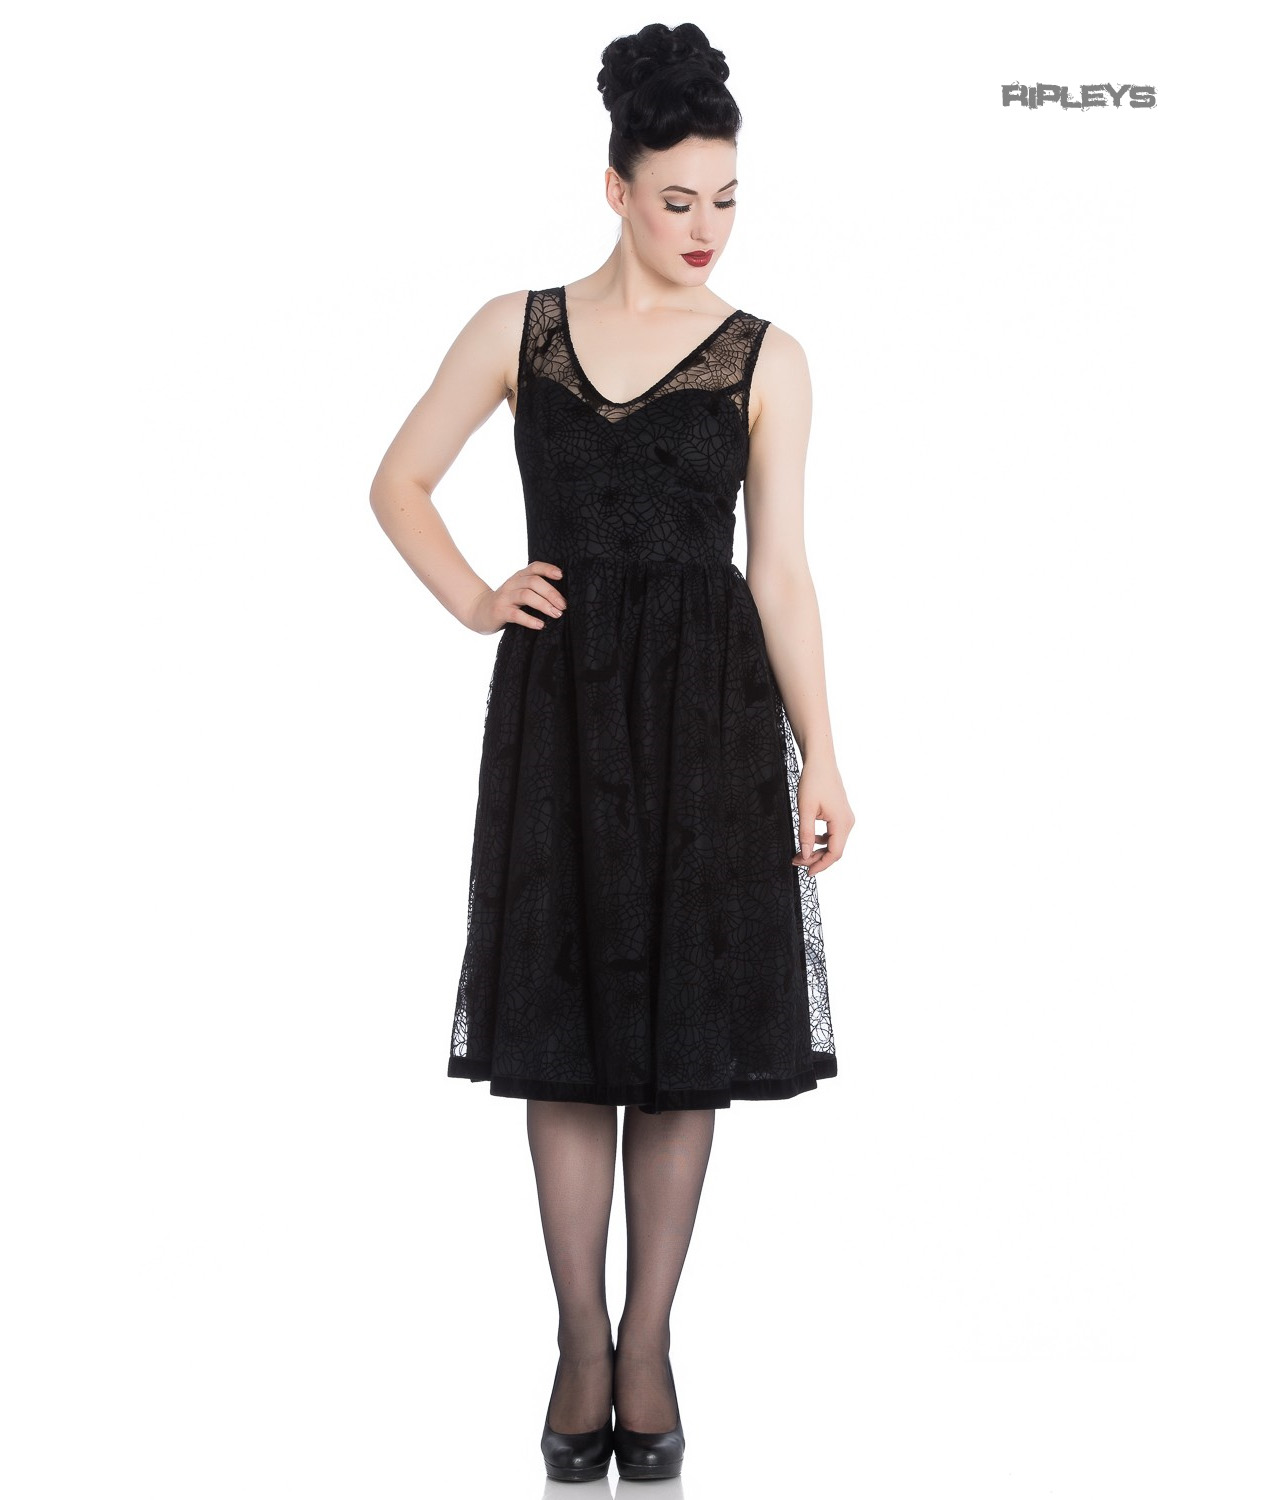 Hell-Bunny-50s-Black-Gothic-Net-Dress-Witchy-AMARANDE-Spiders-Bats-All-Sizes thumbnail 14